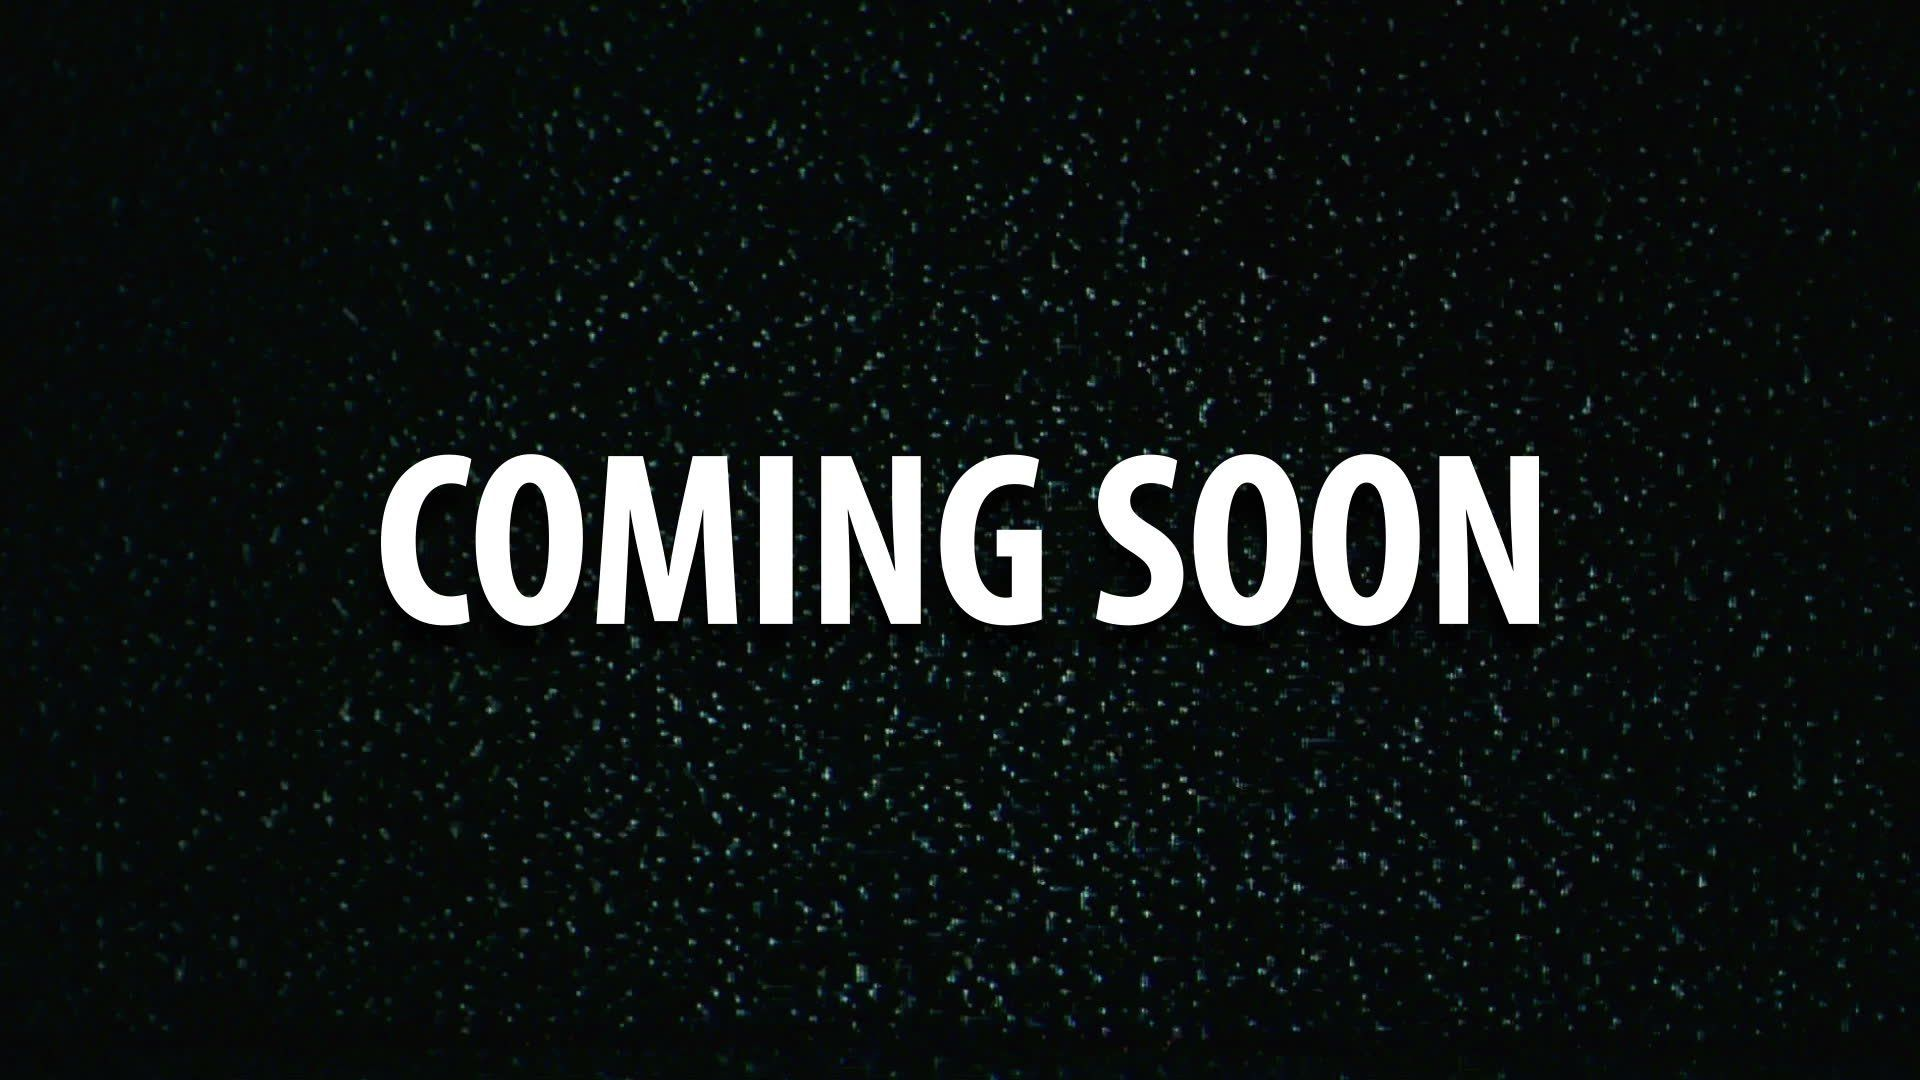 Coming Soon Wallpapers Top Free Coming Soon Backgrounds Wallpaperaccess